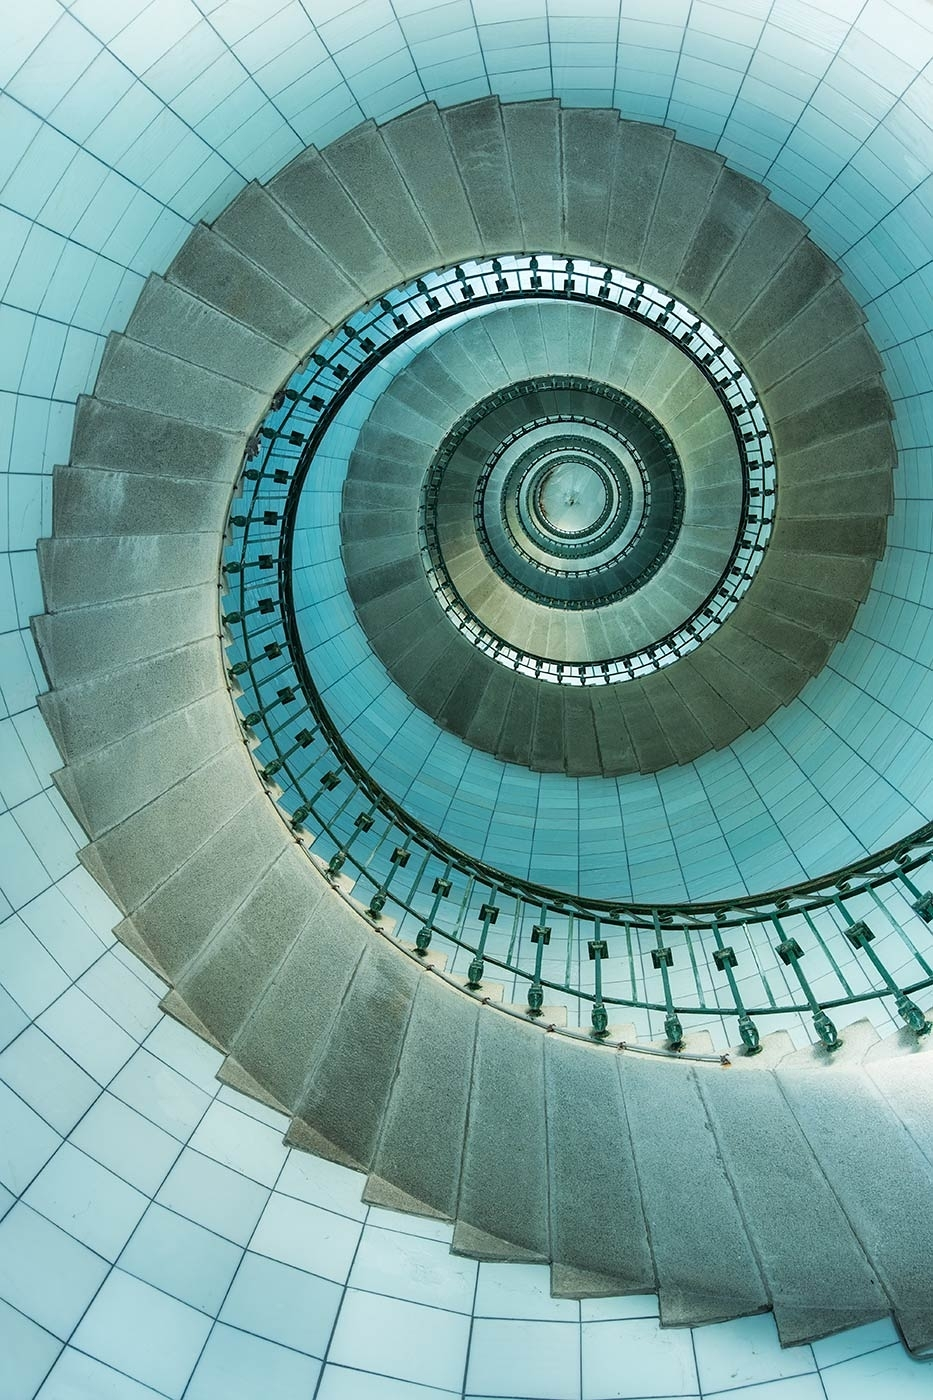 With the stairs just a few feet away, this spiral staircase was shot at f8, yet its tack sharp from the edges to the centre some 70foot up.